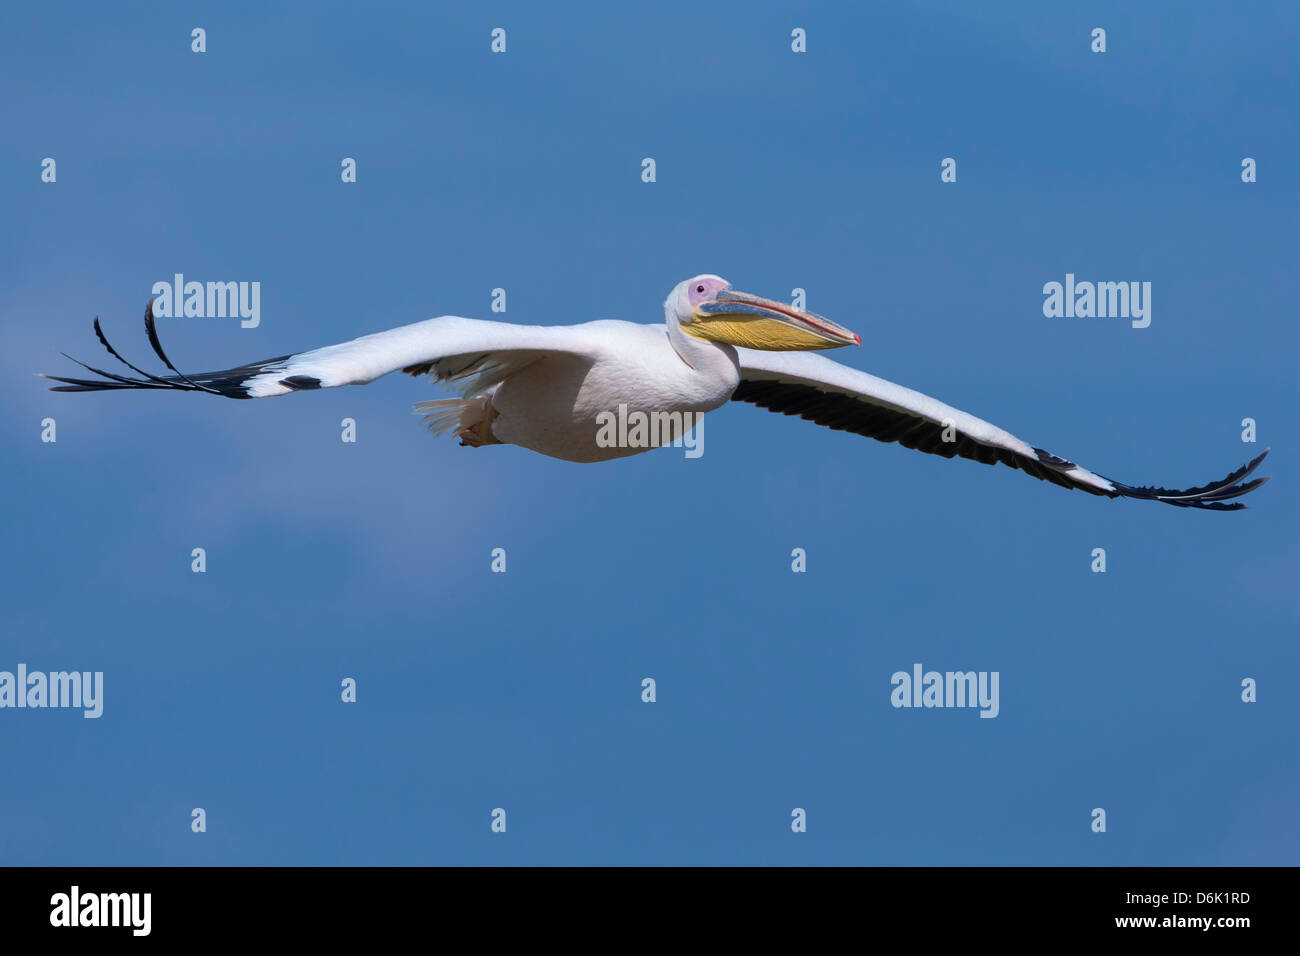 Great white pelican (Pelecanus onocrotalus) in flight, Lake Nakuru National Park, Kenya, East Africa, Africa - Stock Image